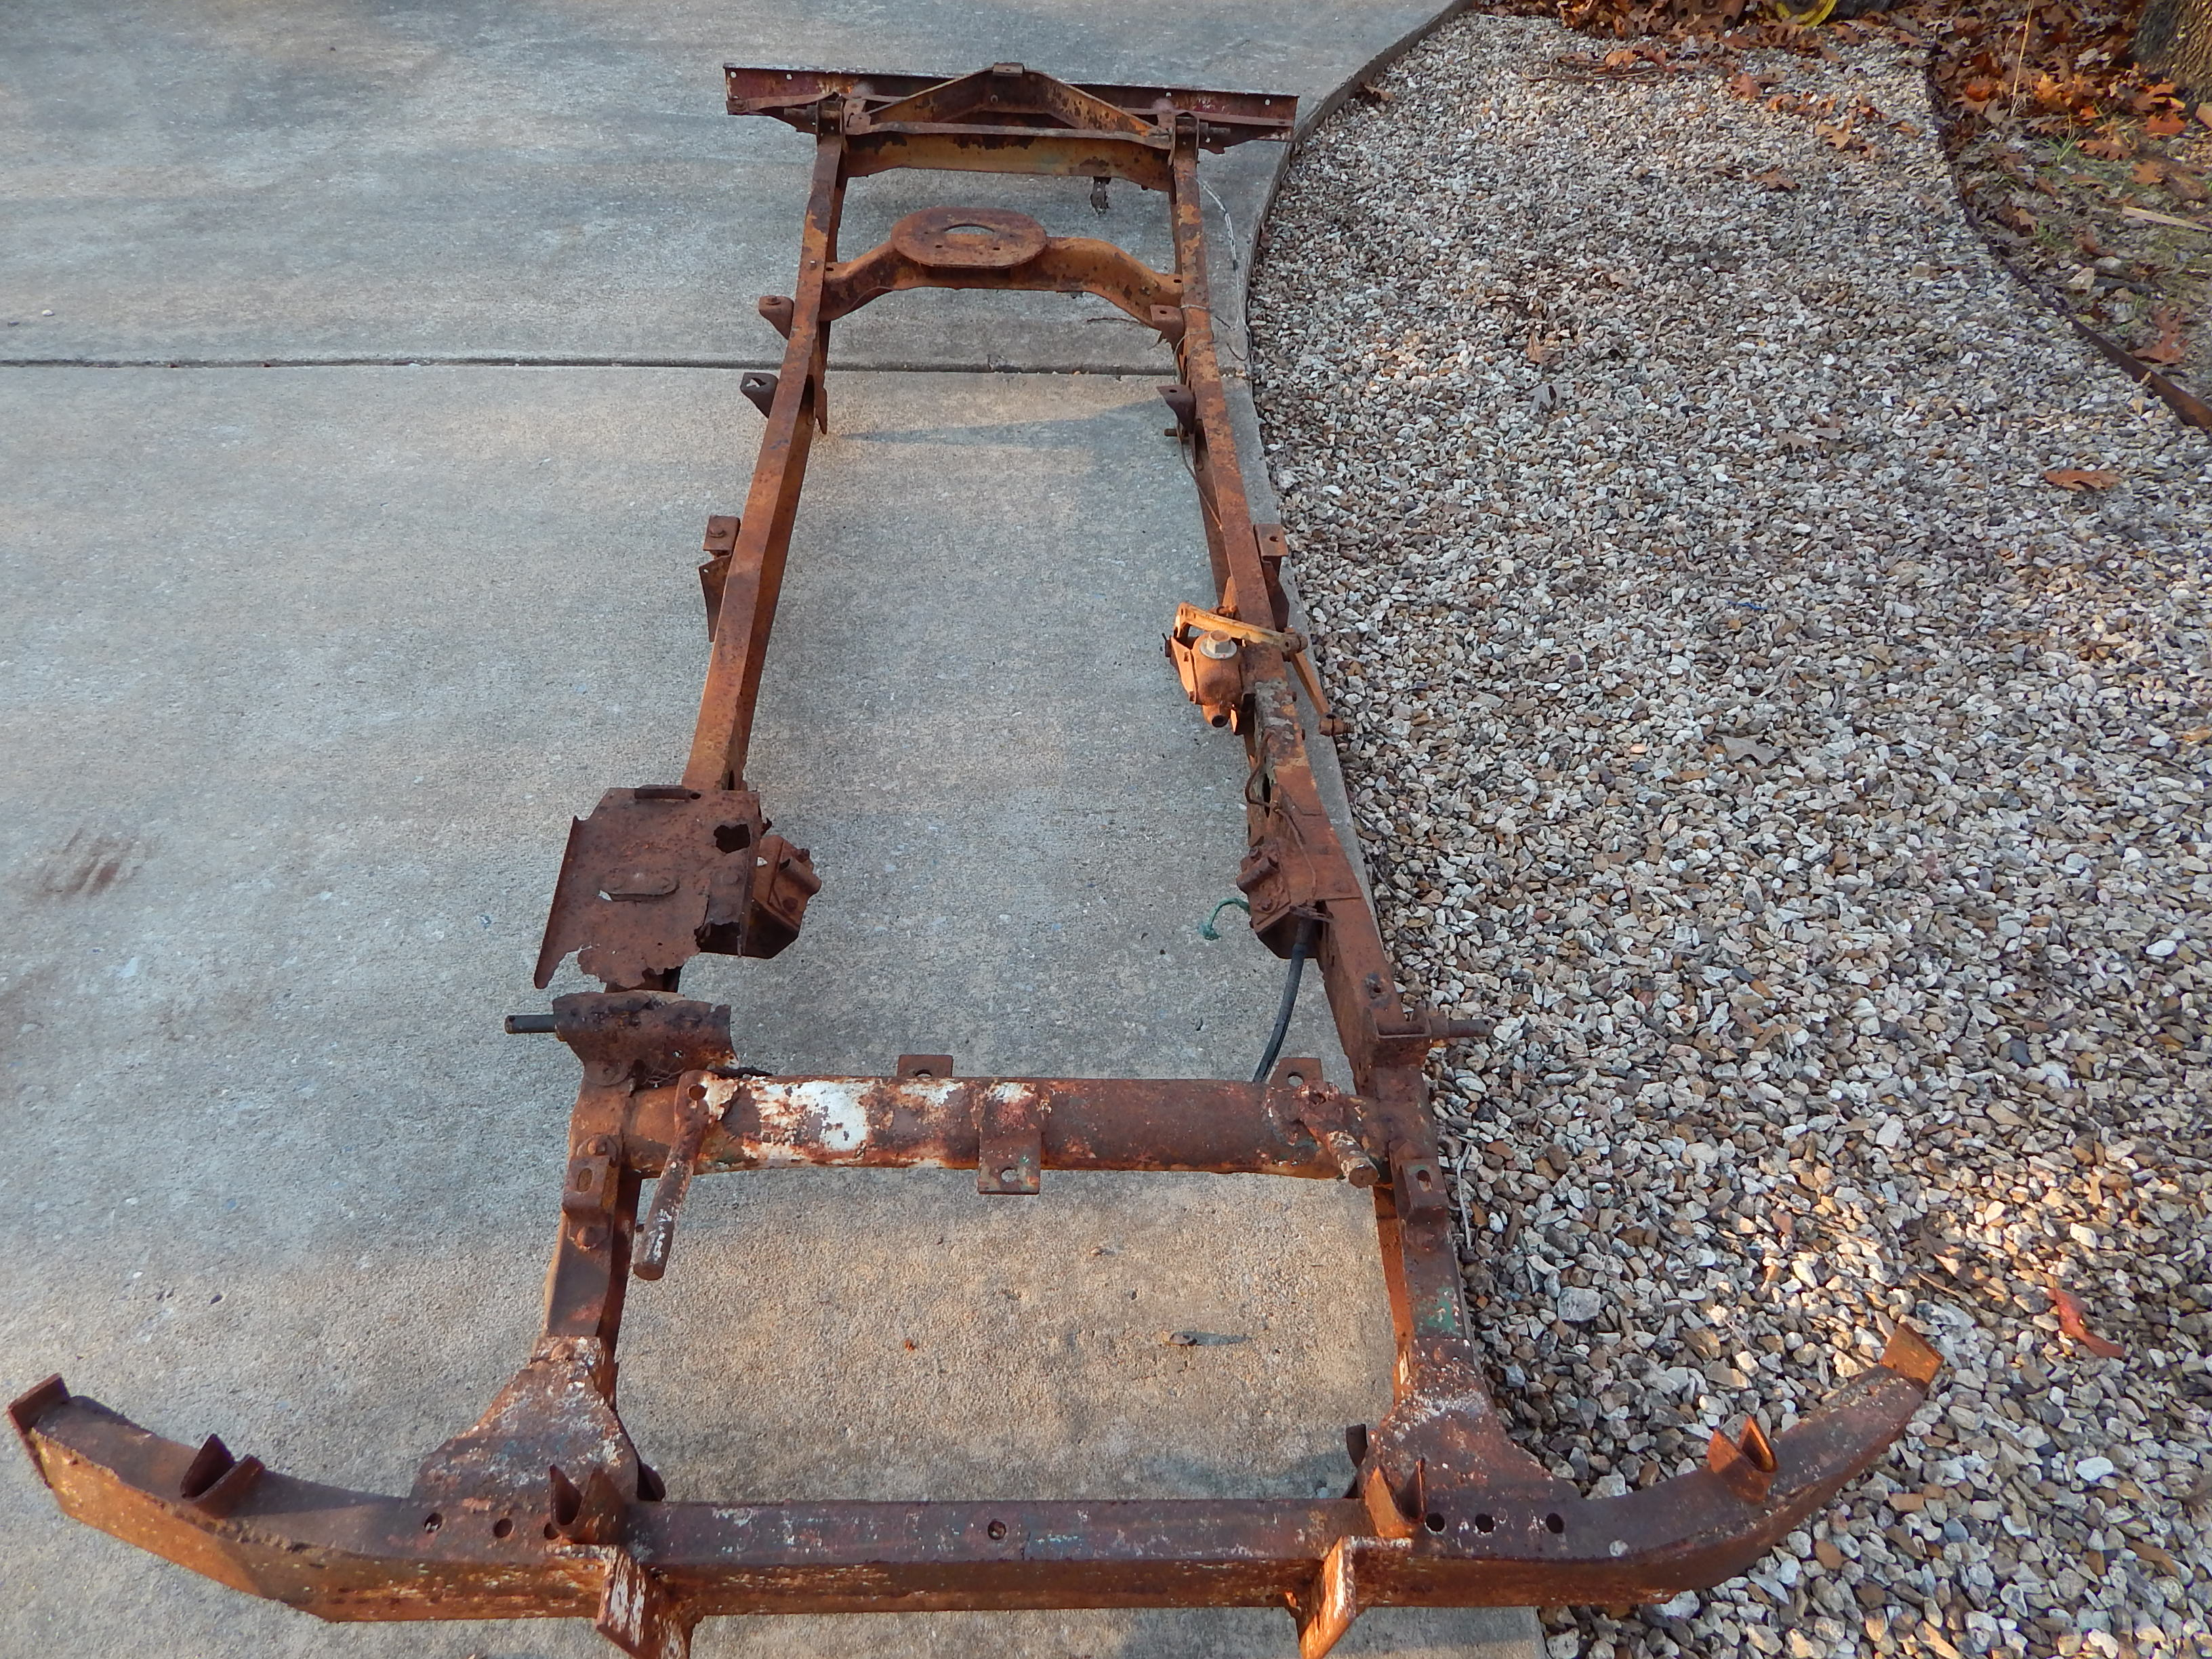 1945 Willys Mb Frame For Sale Classic Military Vehicles